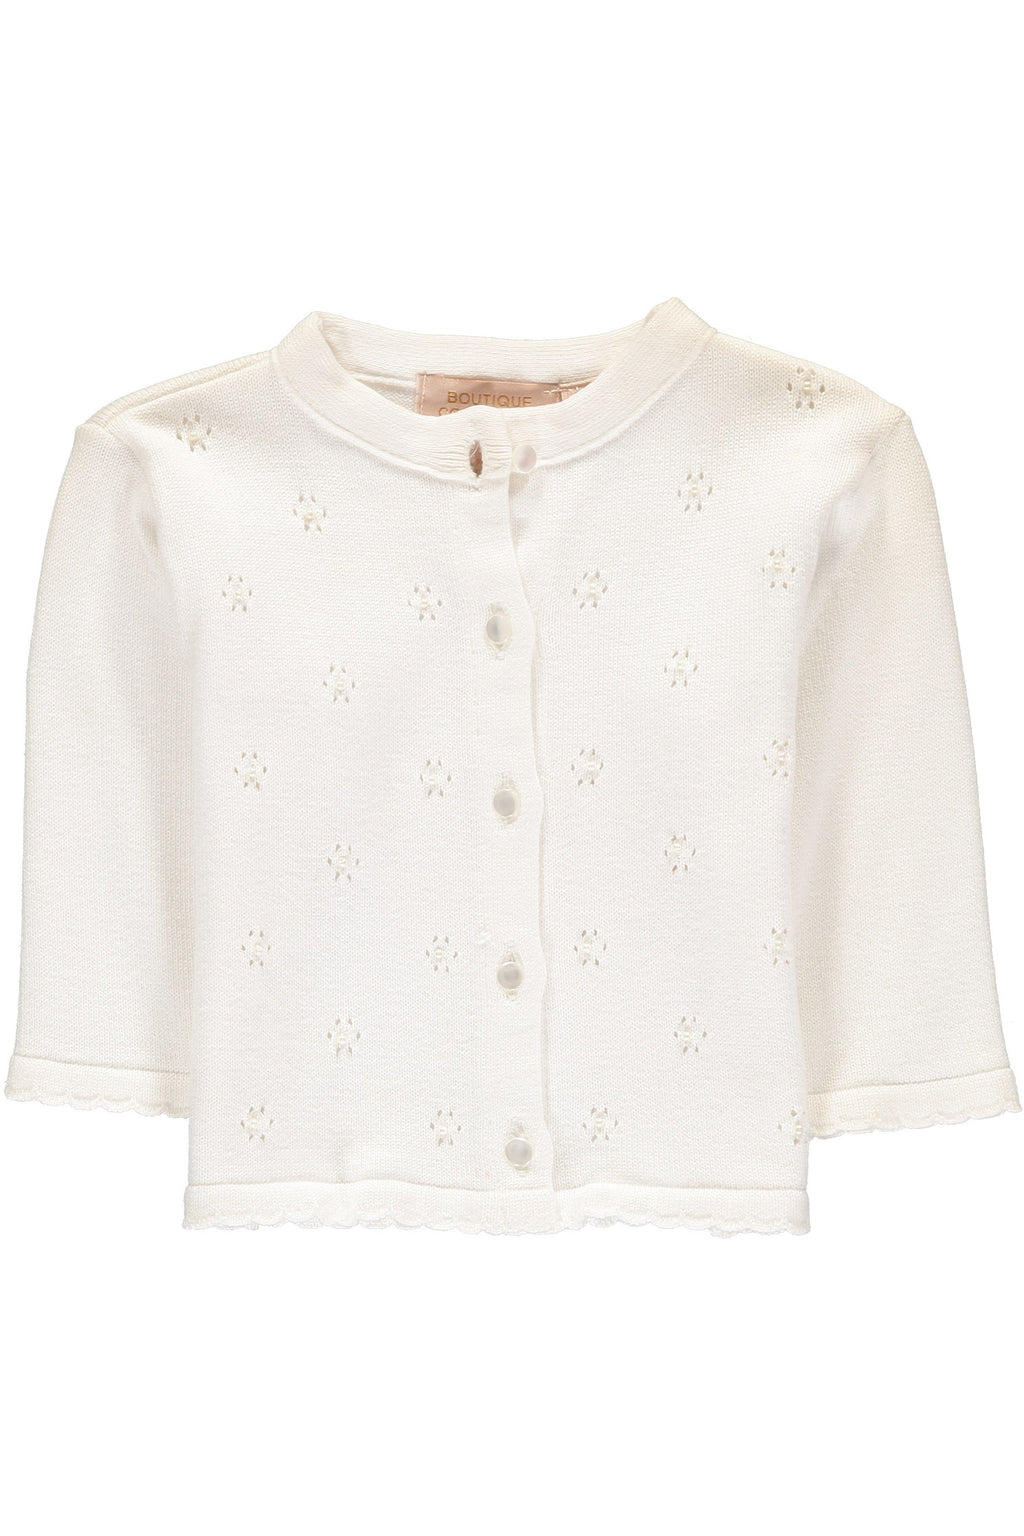 Baby Girl Soft Knit Cardigan - Ivory Spring Sweater [product_tags] - Carriage Boutique